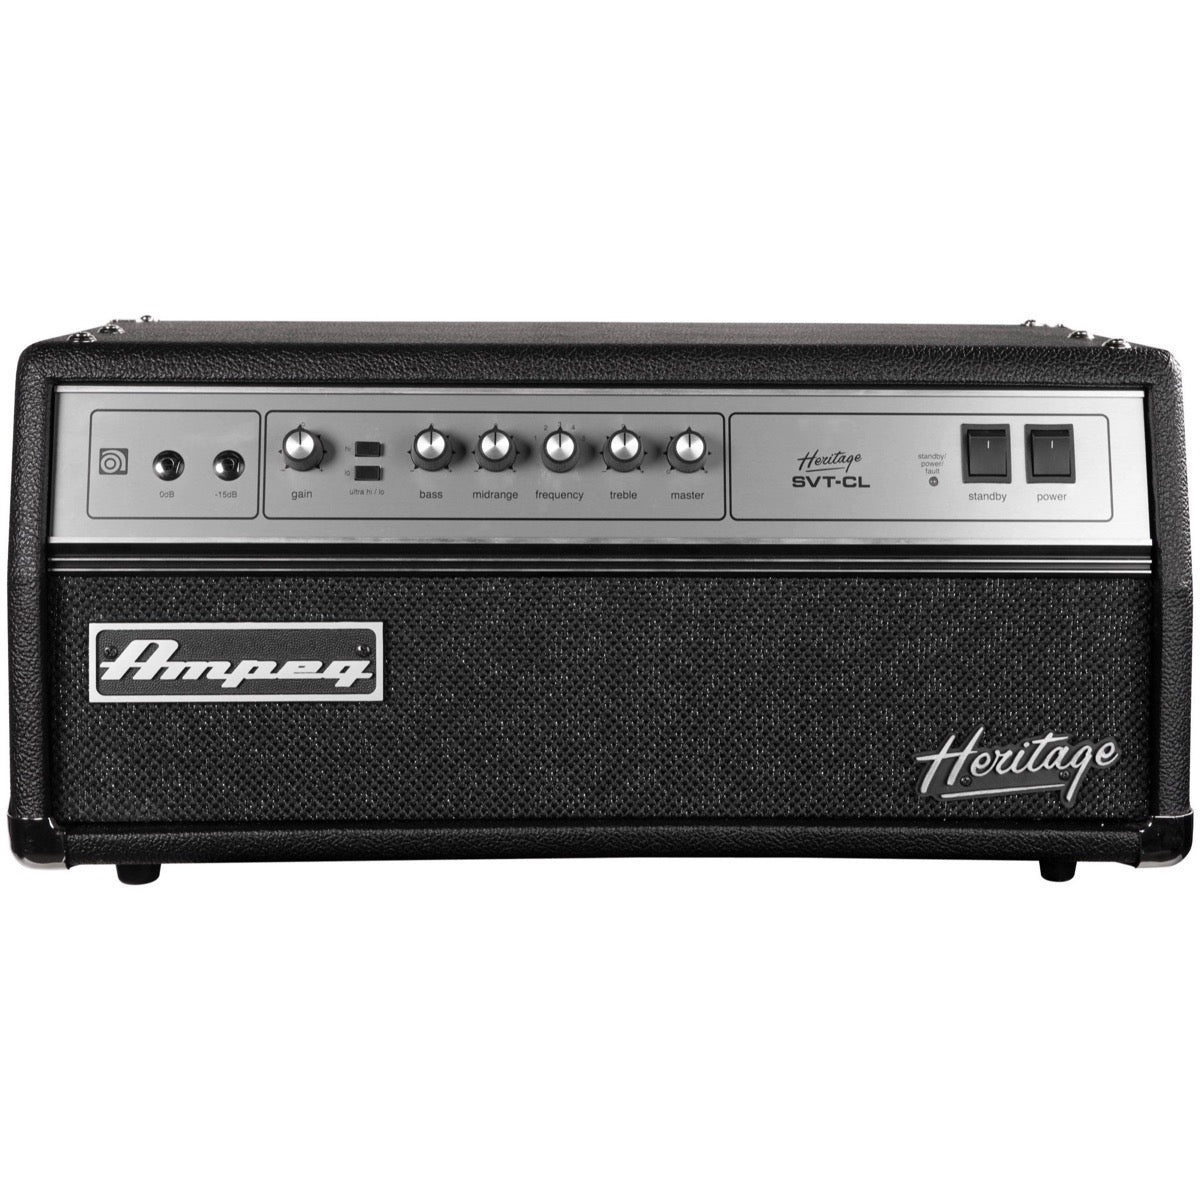 Ampeg Heritage SVT-CL 2011 Bass Amplifier Head, 300 Watts